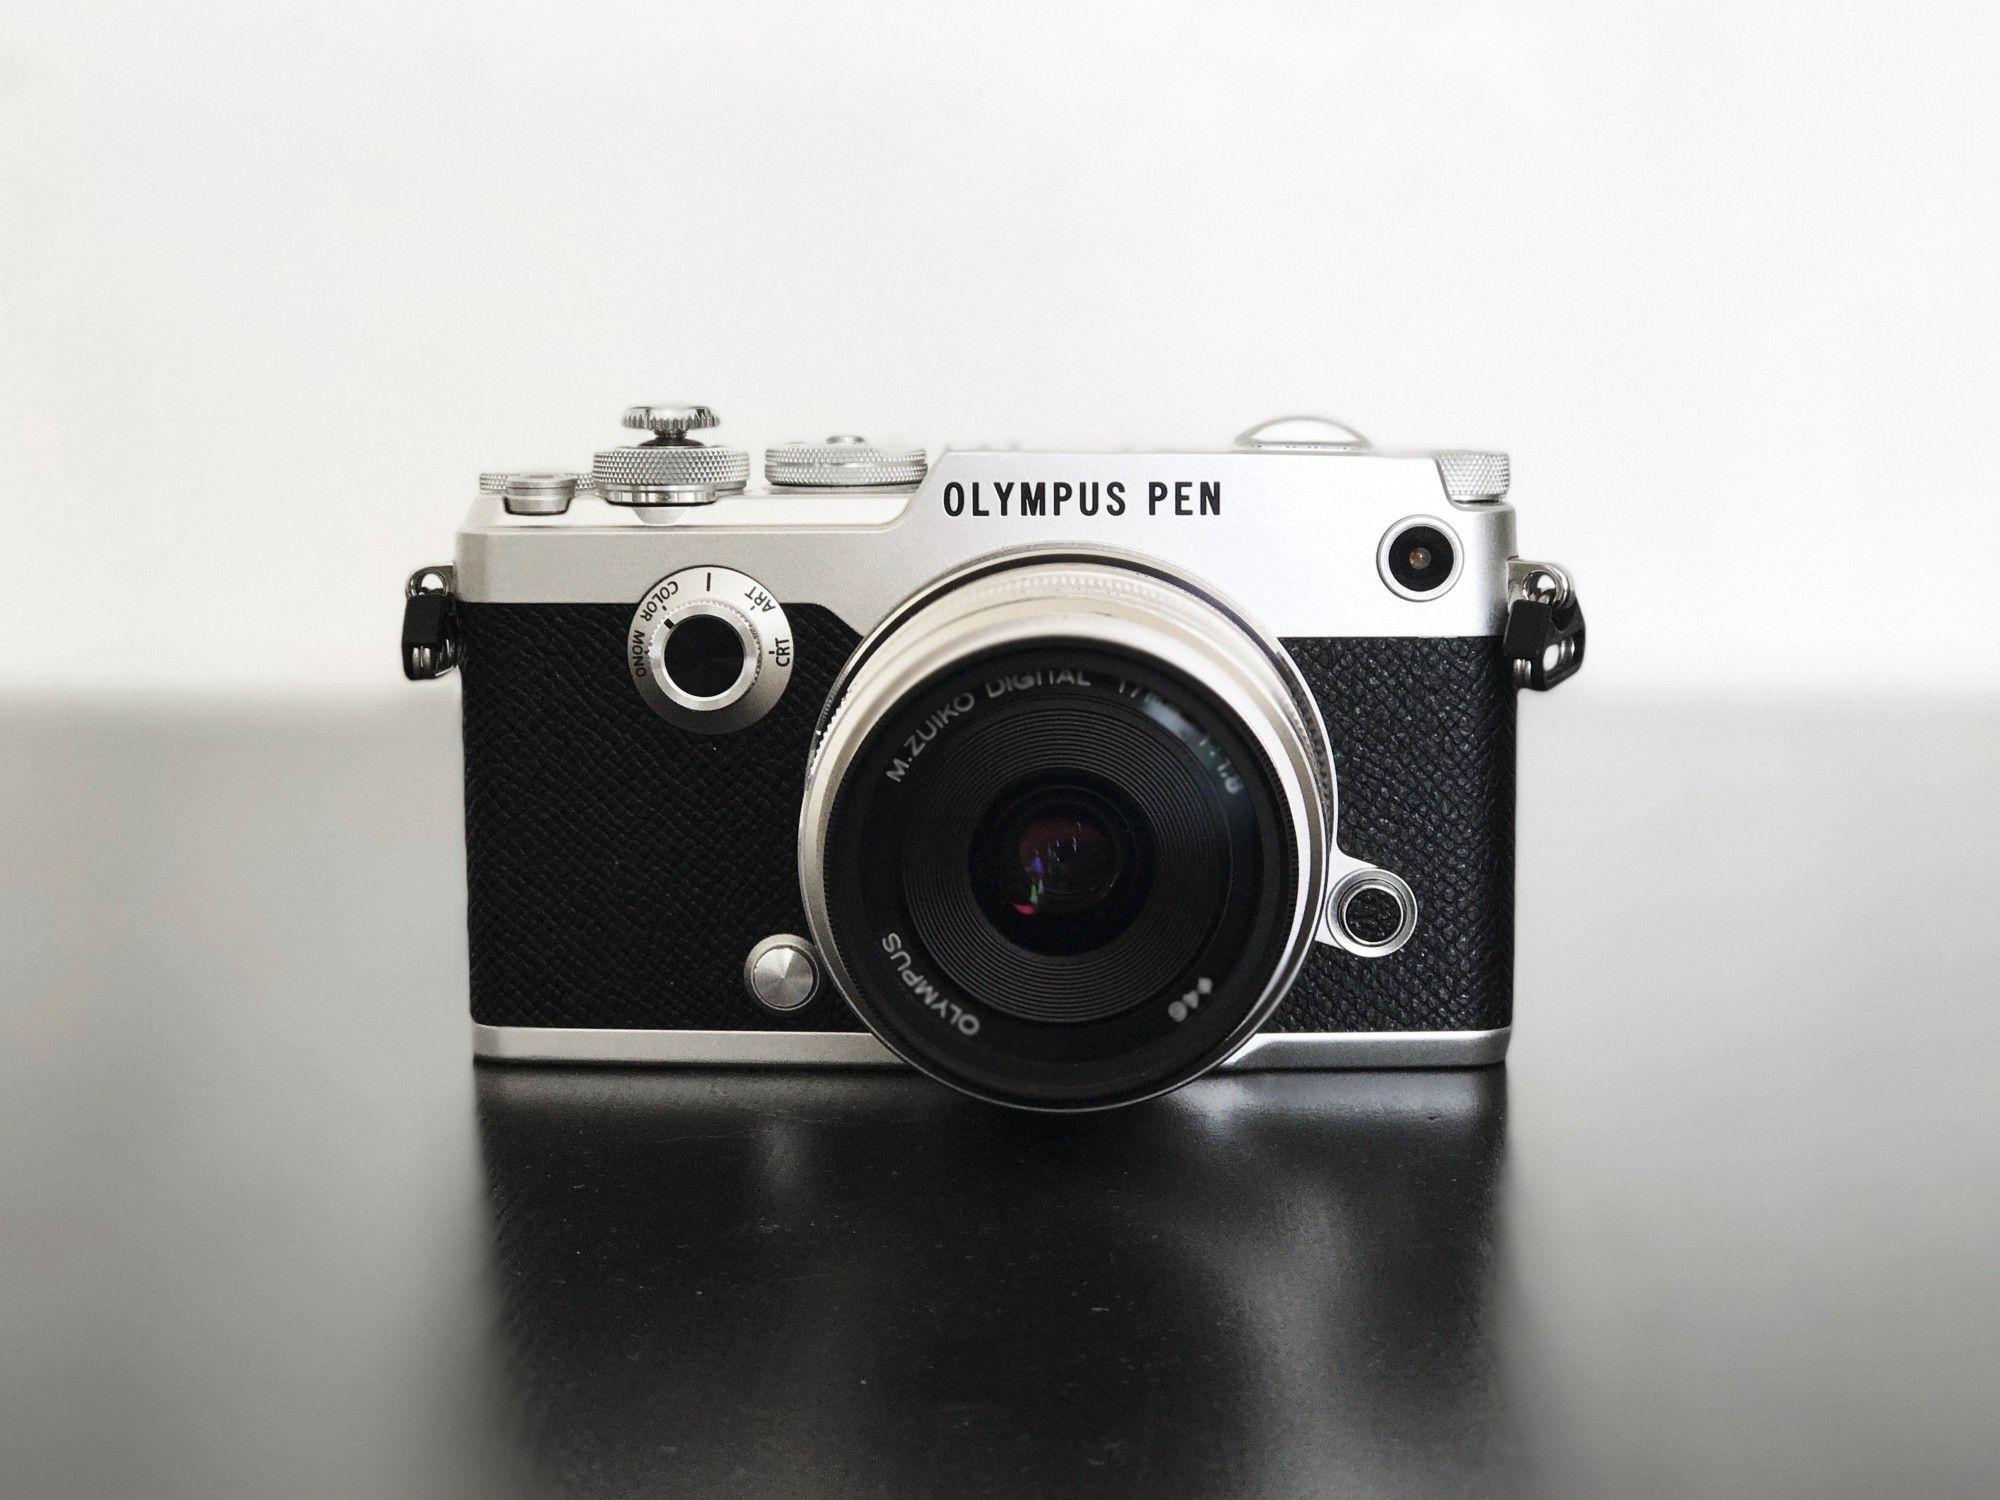 My PEN-F, with 17mm ƒ/1.8 mounted and a soft shutter release button.